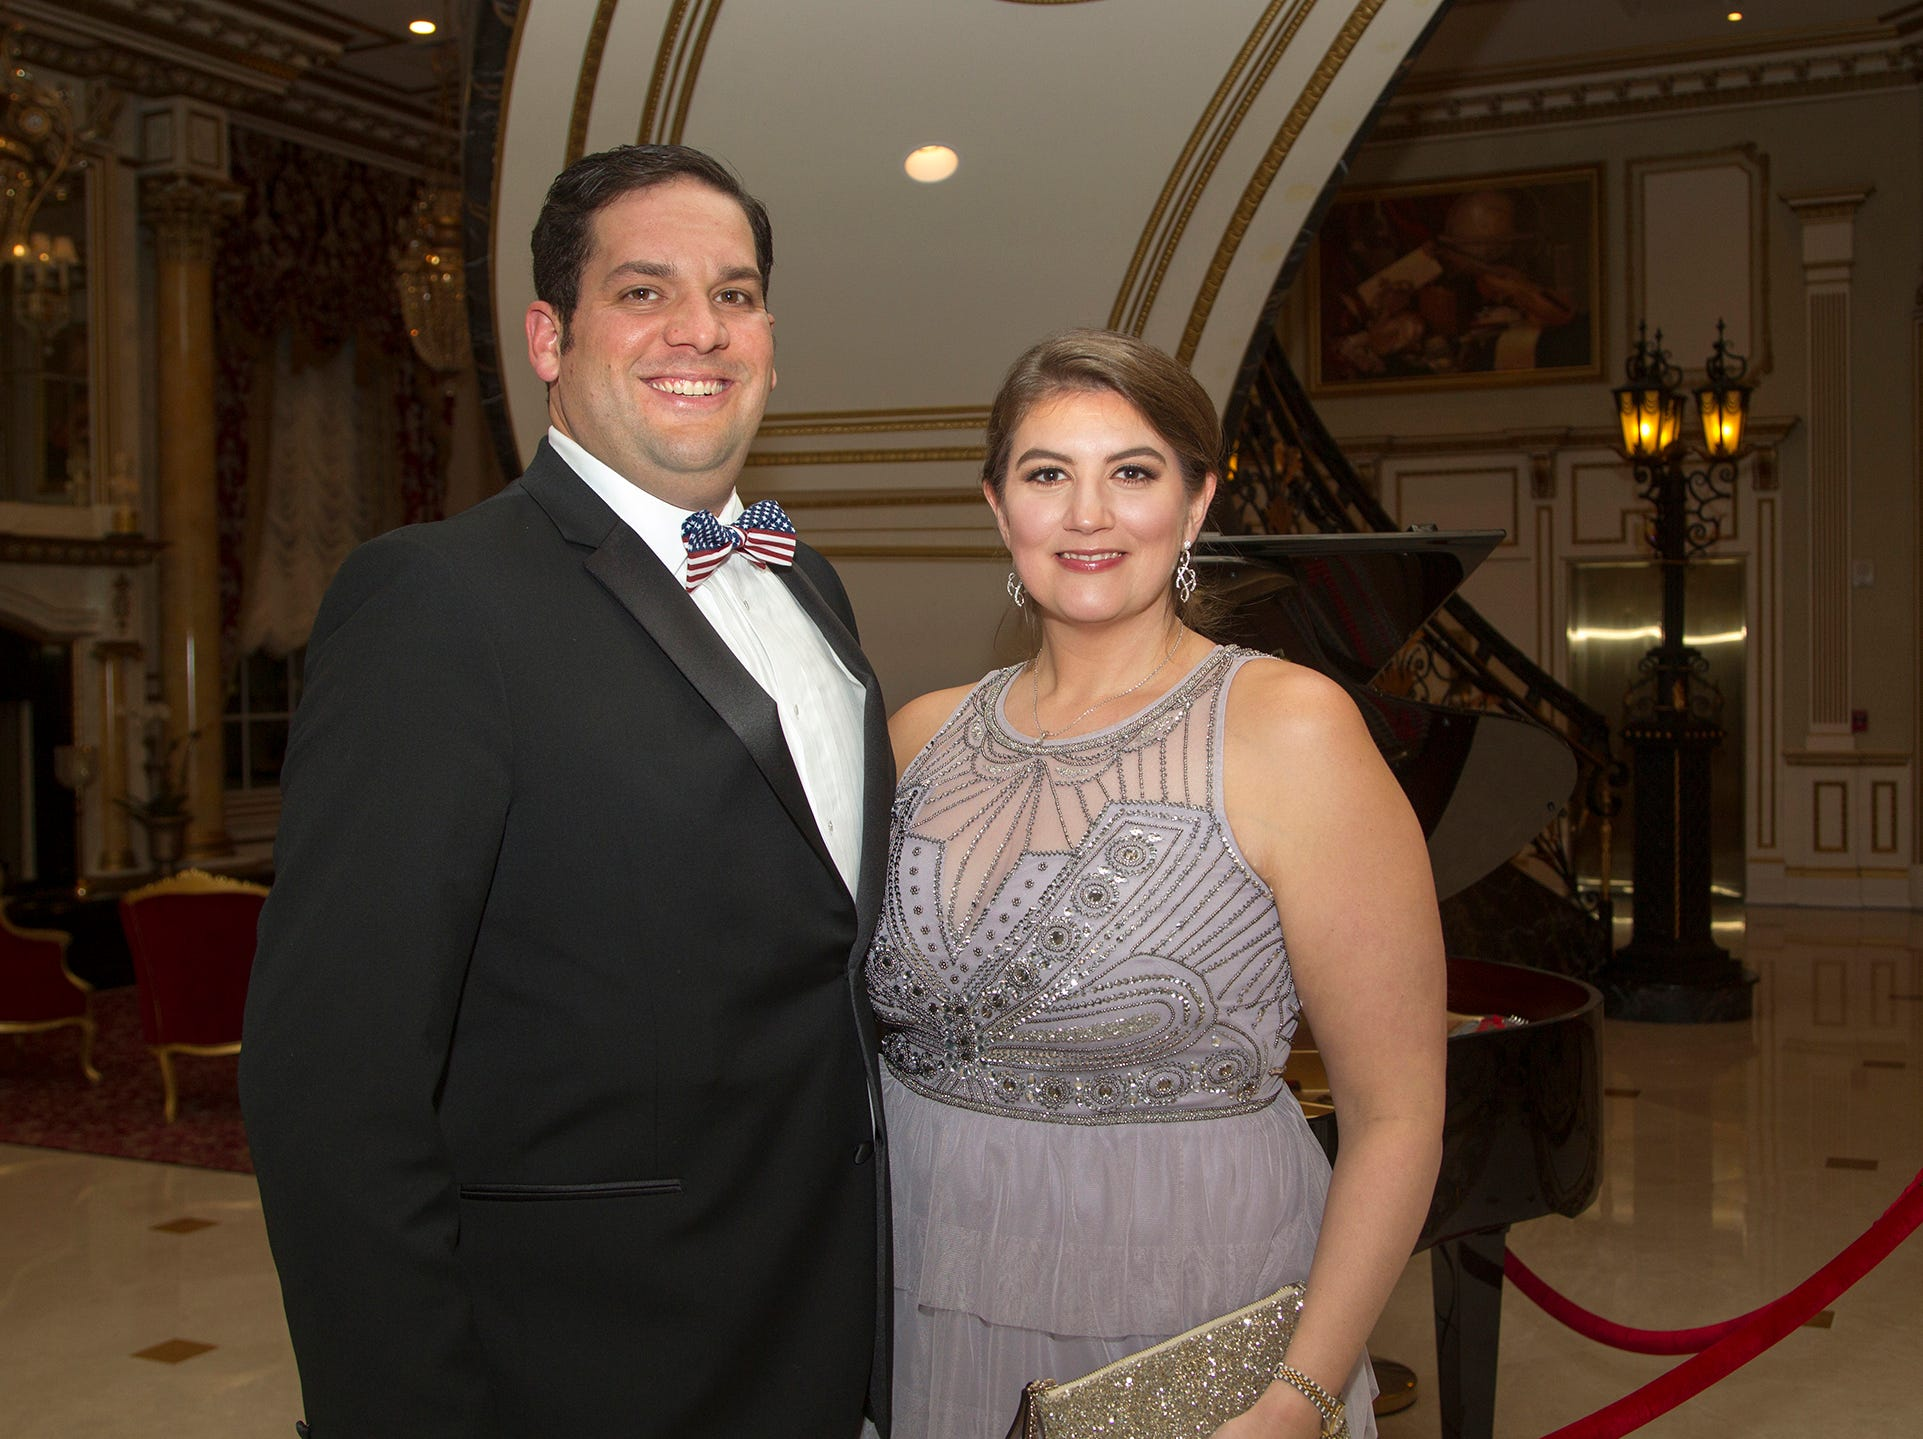 James and Alessandra Agnew. The 72nd Annual Valley Ball gala at The Legacy Castle in Pompton Plains. 11/16/2018